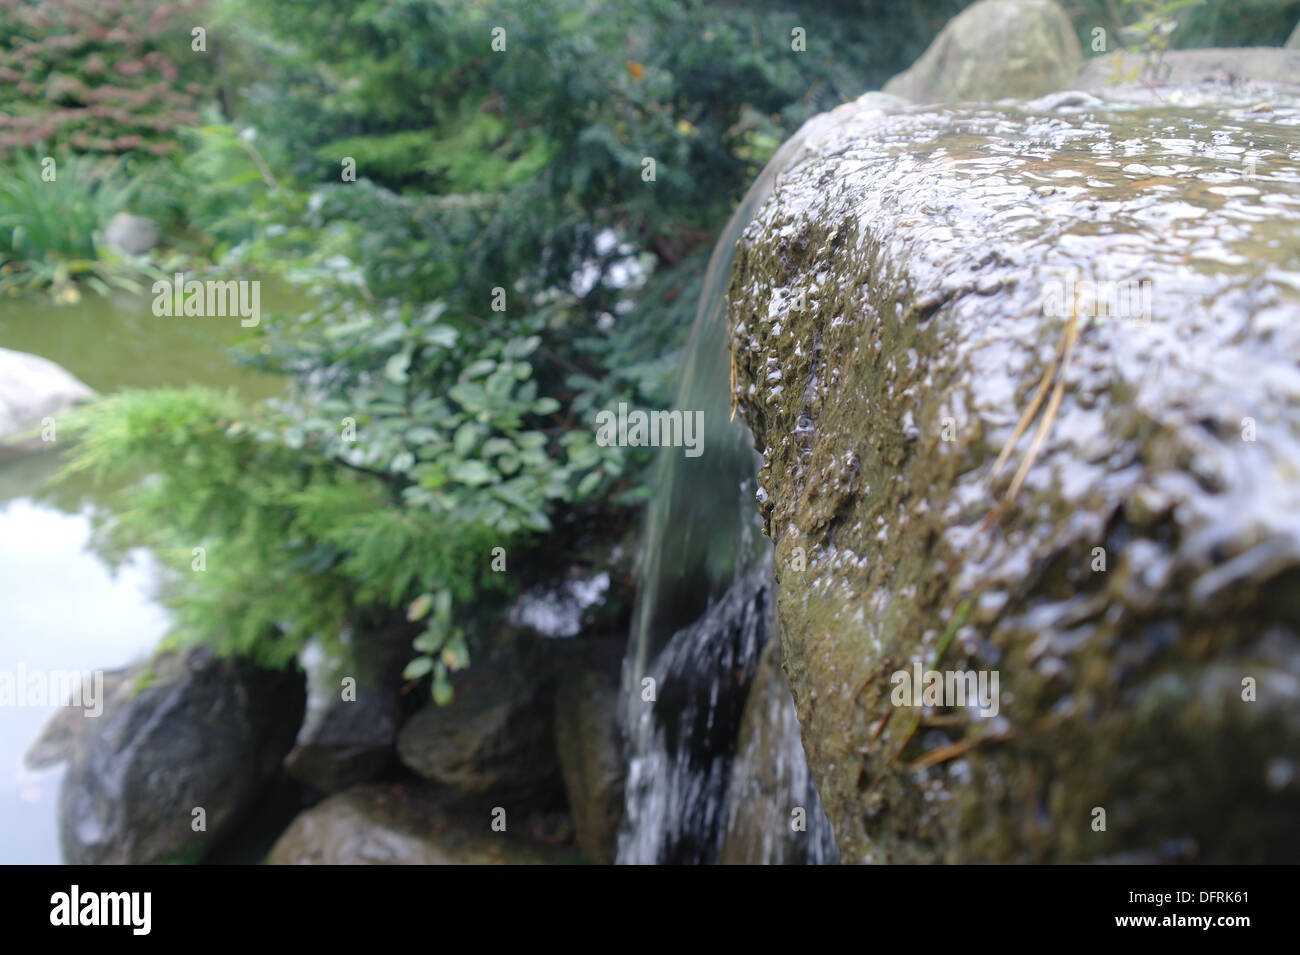 Water rushing off the side of a gleaming rock into a small lake. - Stock Image